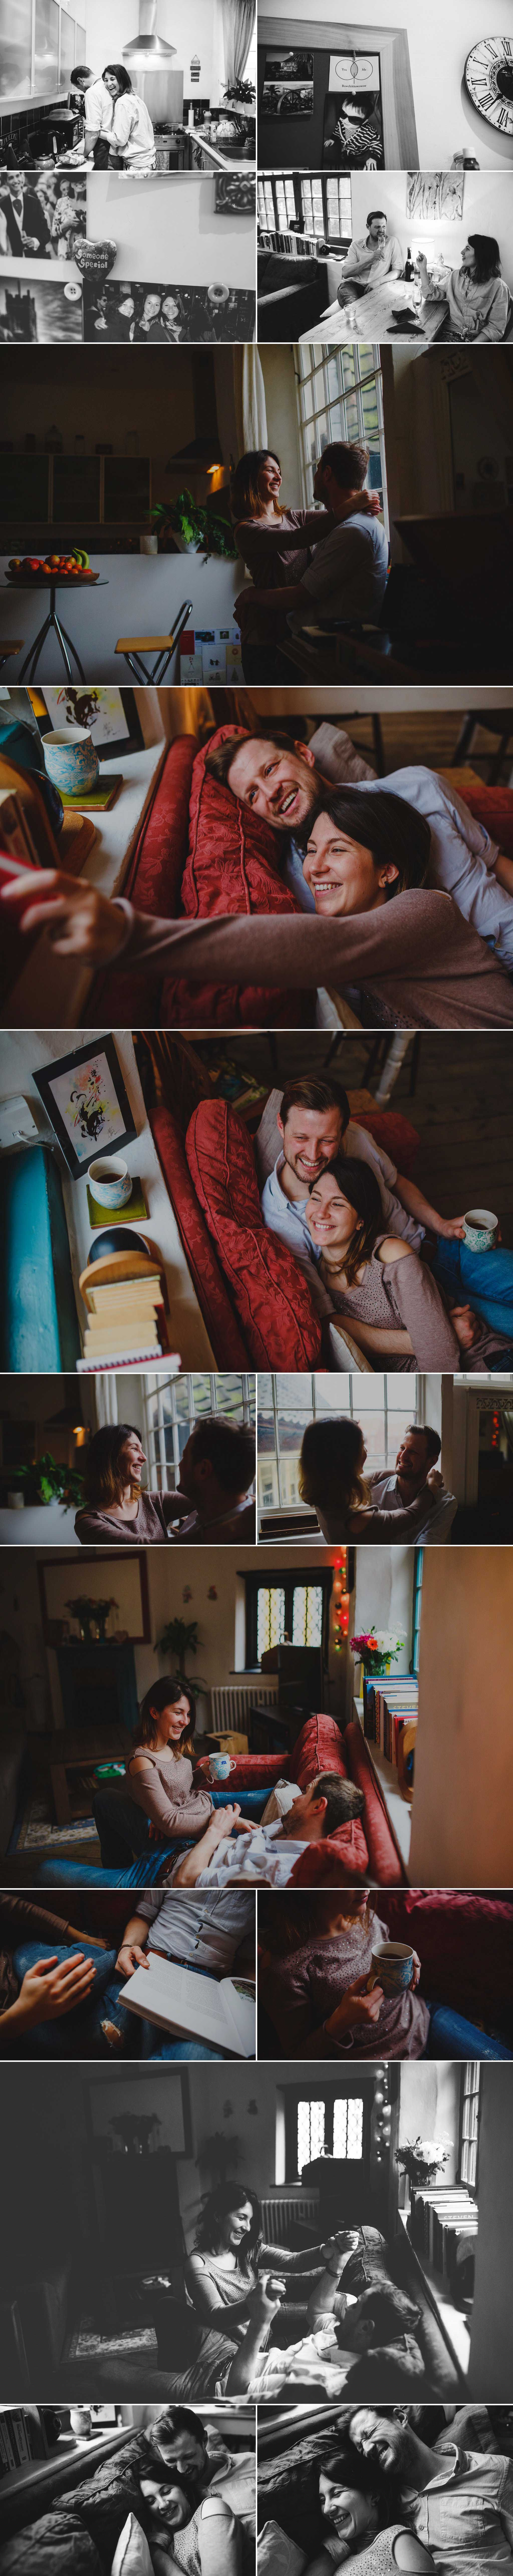 Norwich Pre wedding Photography Rob Dodsworth Photography 2